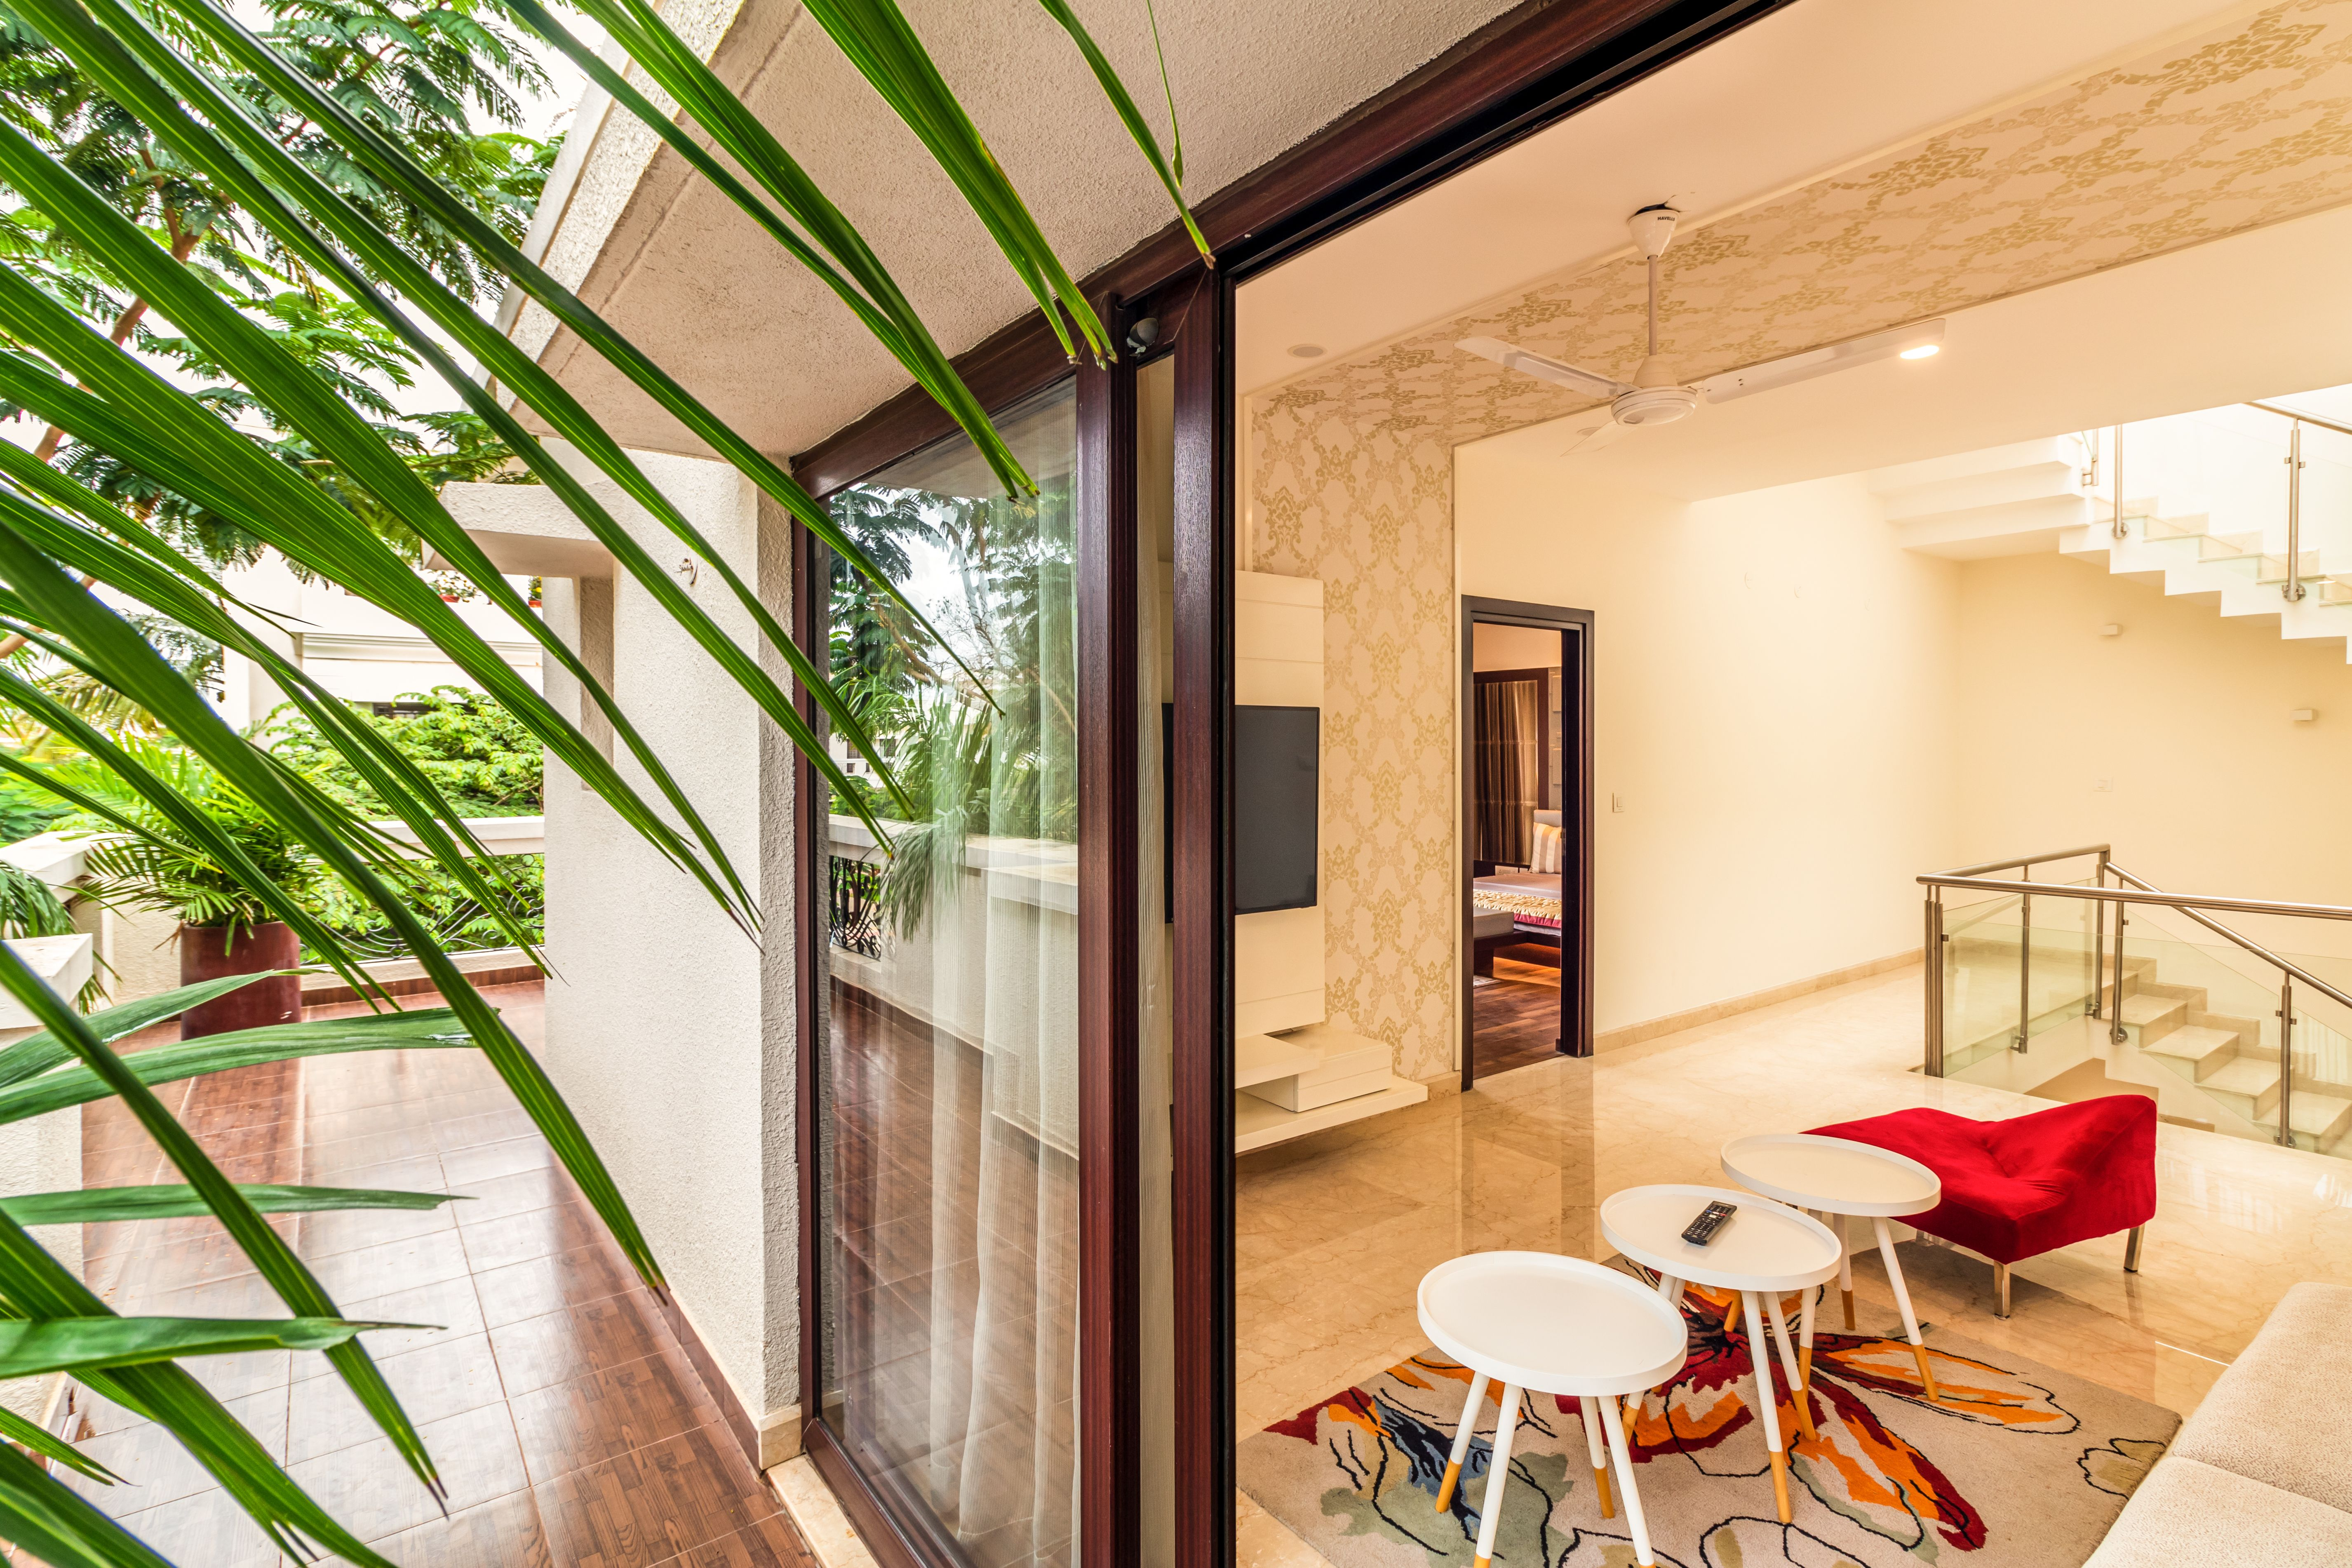 Premium Villas in Bangalore with Imported Marble and